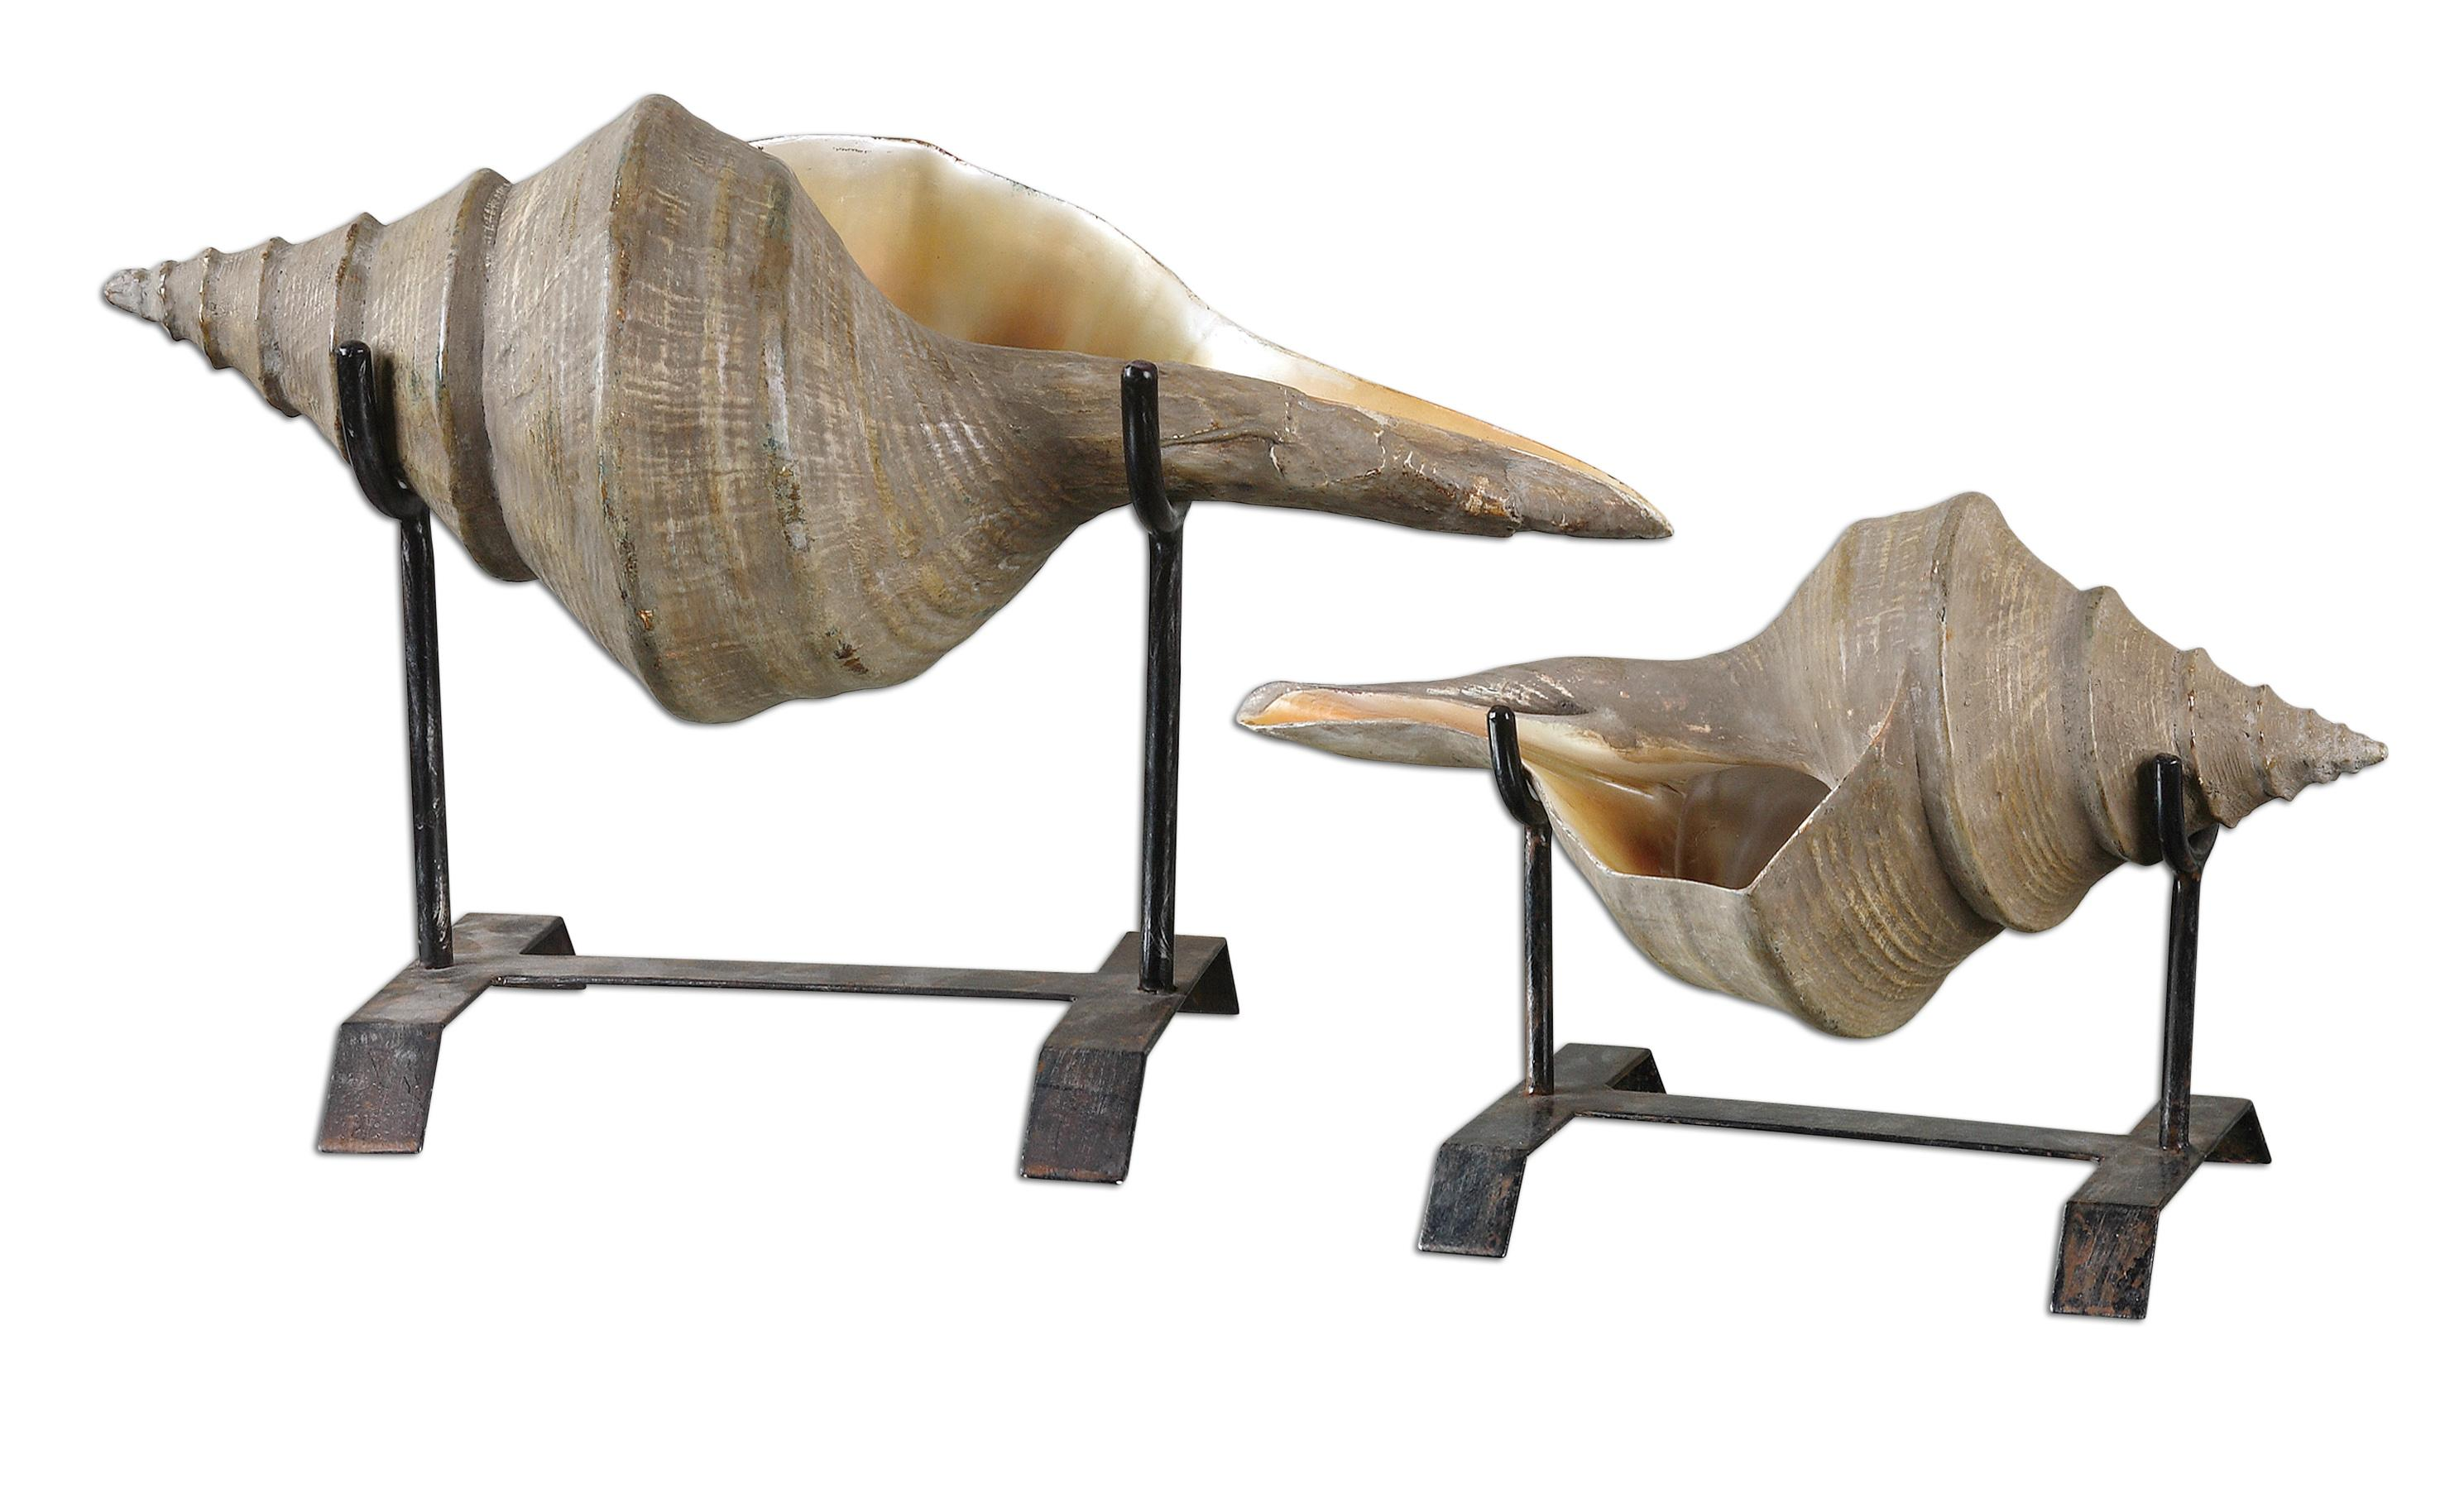 Accessories - Statues and Figurines Conch Shell Sculpture Set of 2 by Uttermost at Mueller Furniture